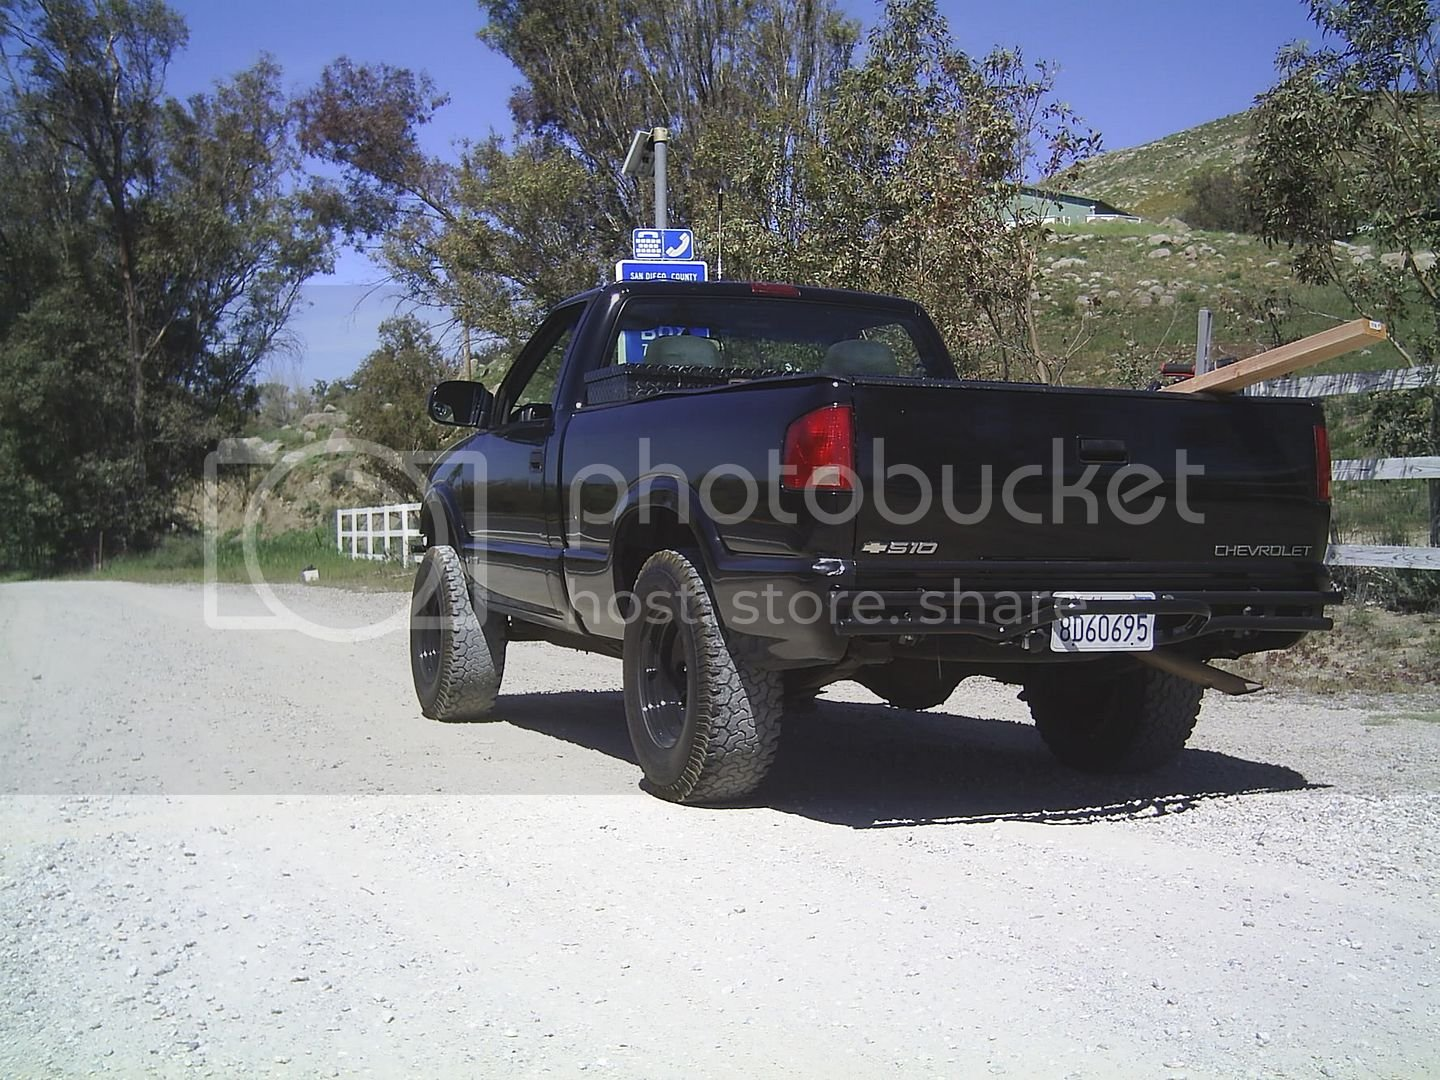 Lifted 2wd pics, post them! | S-10 Forum